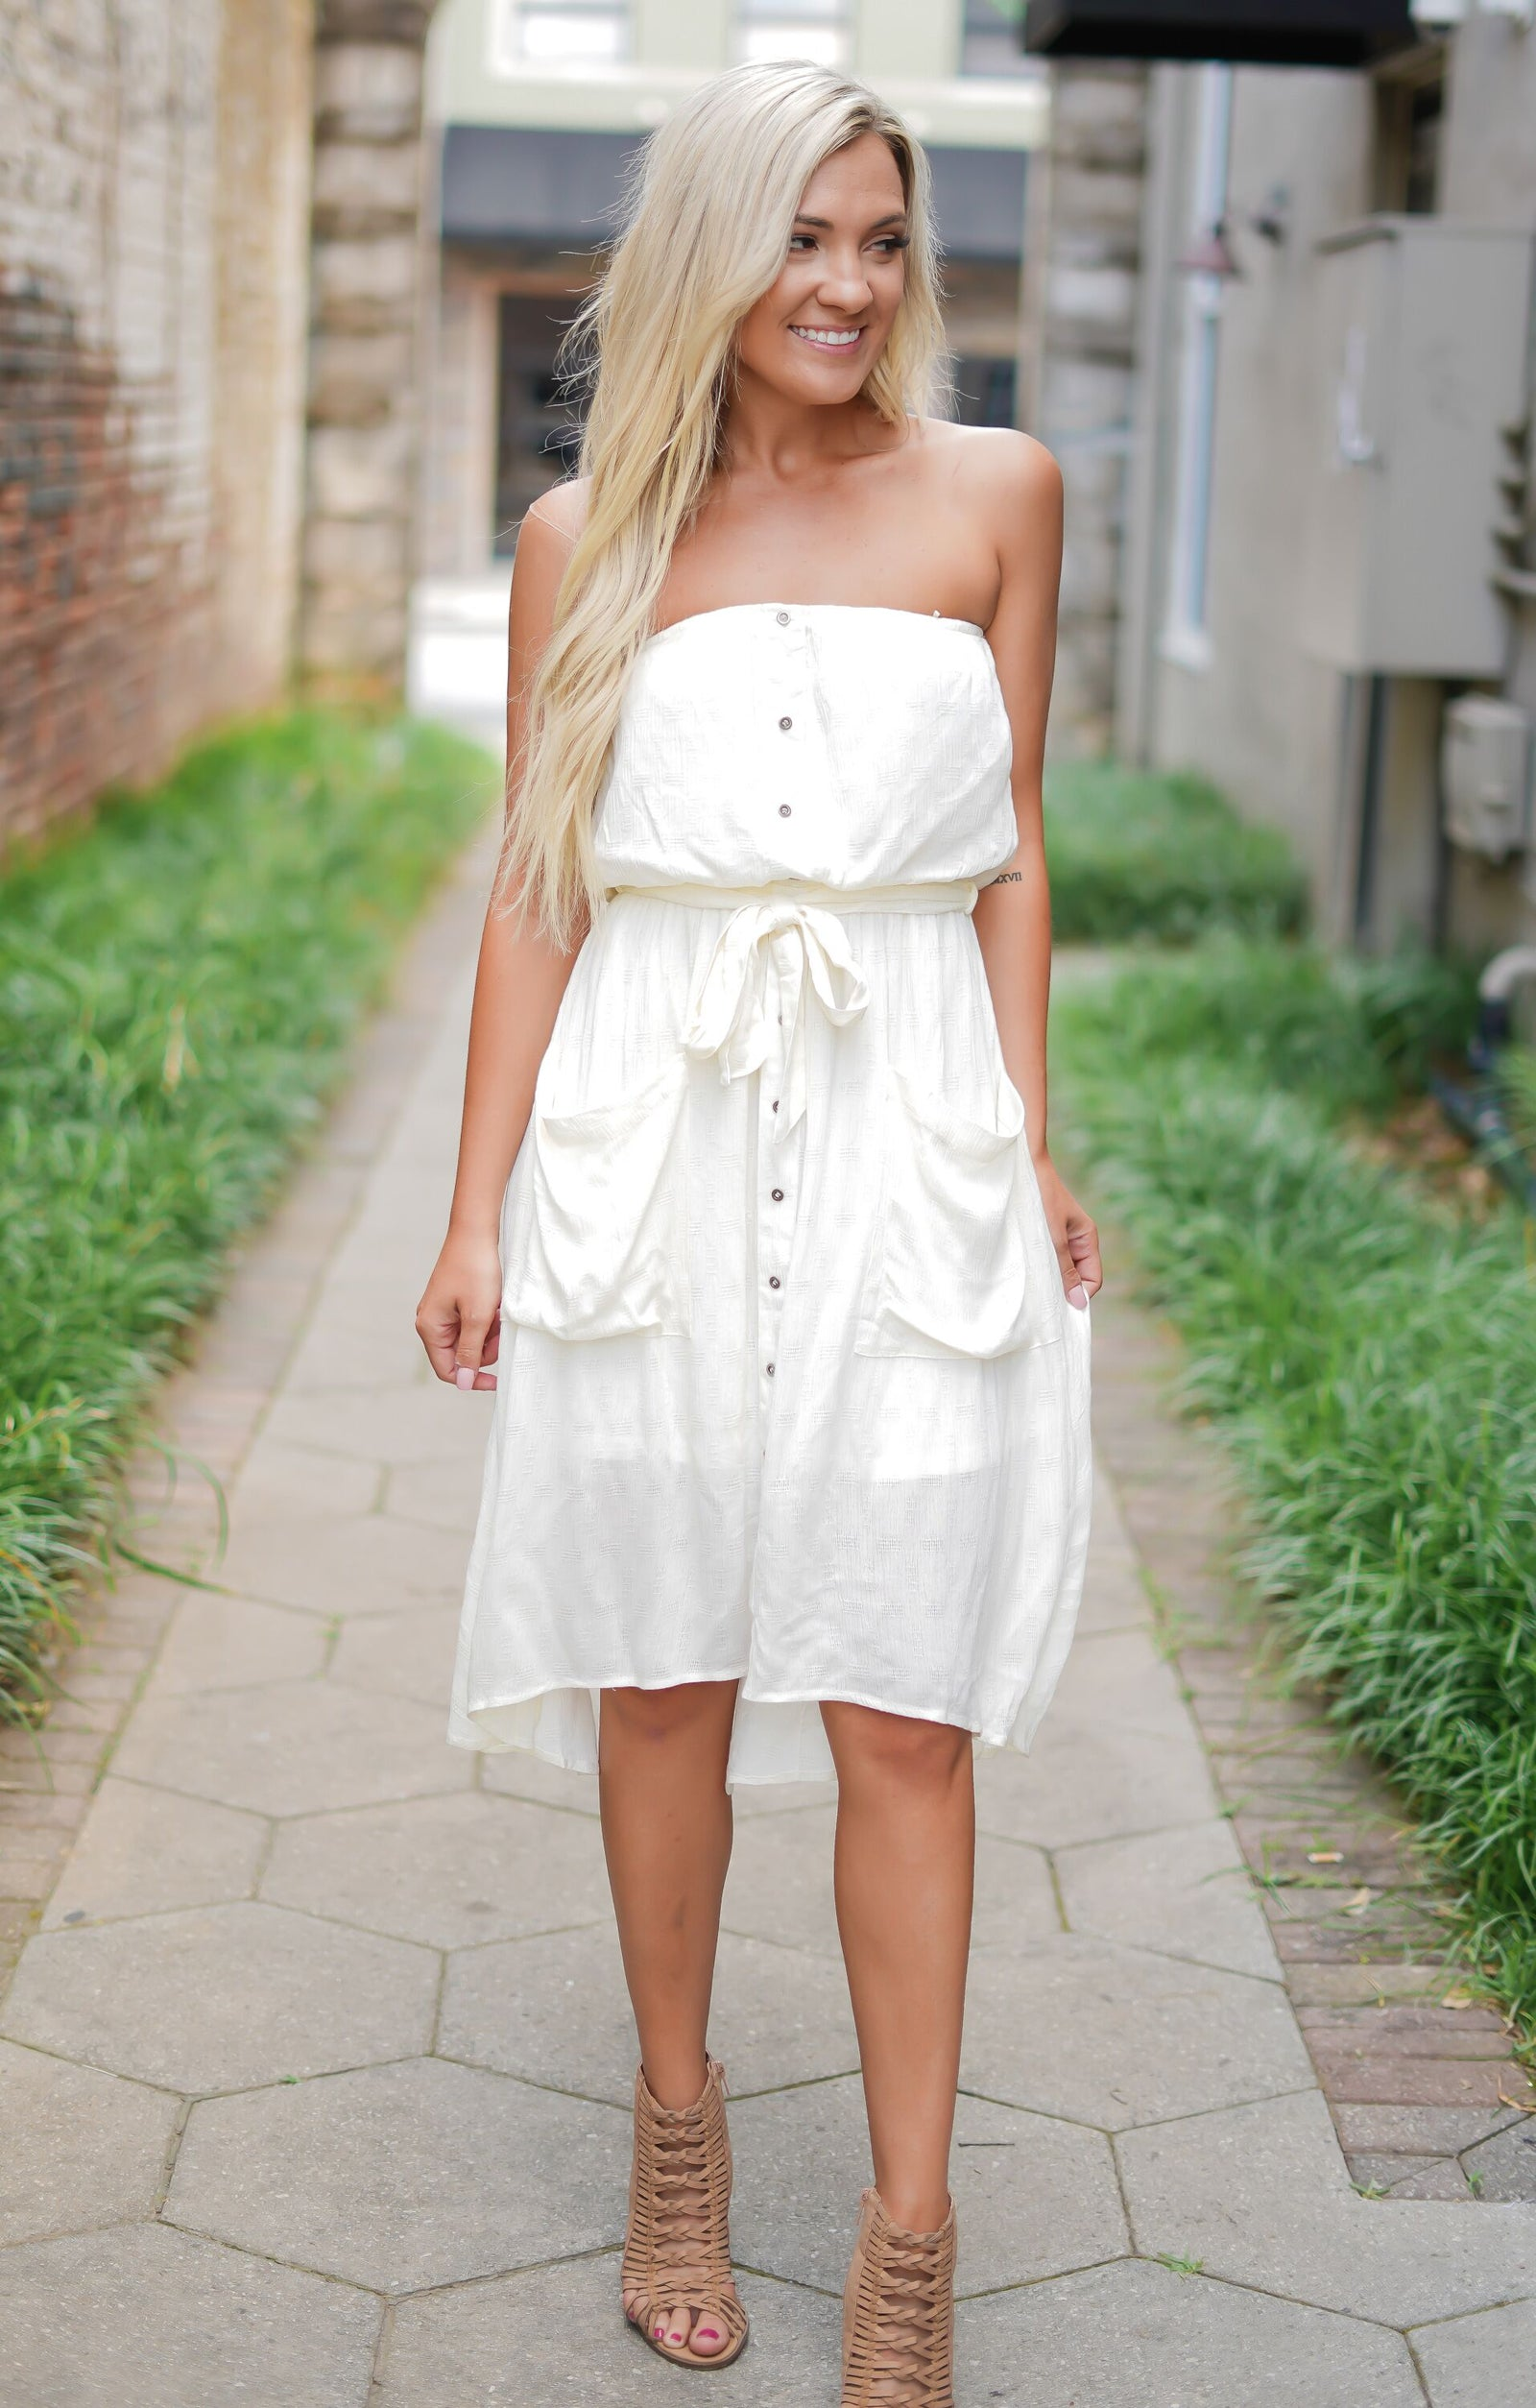 Vanilla Swirl Dress